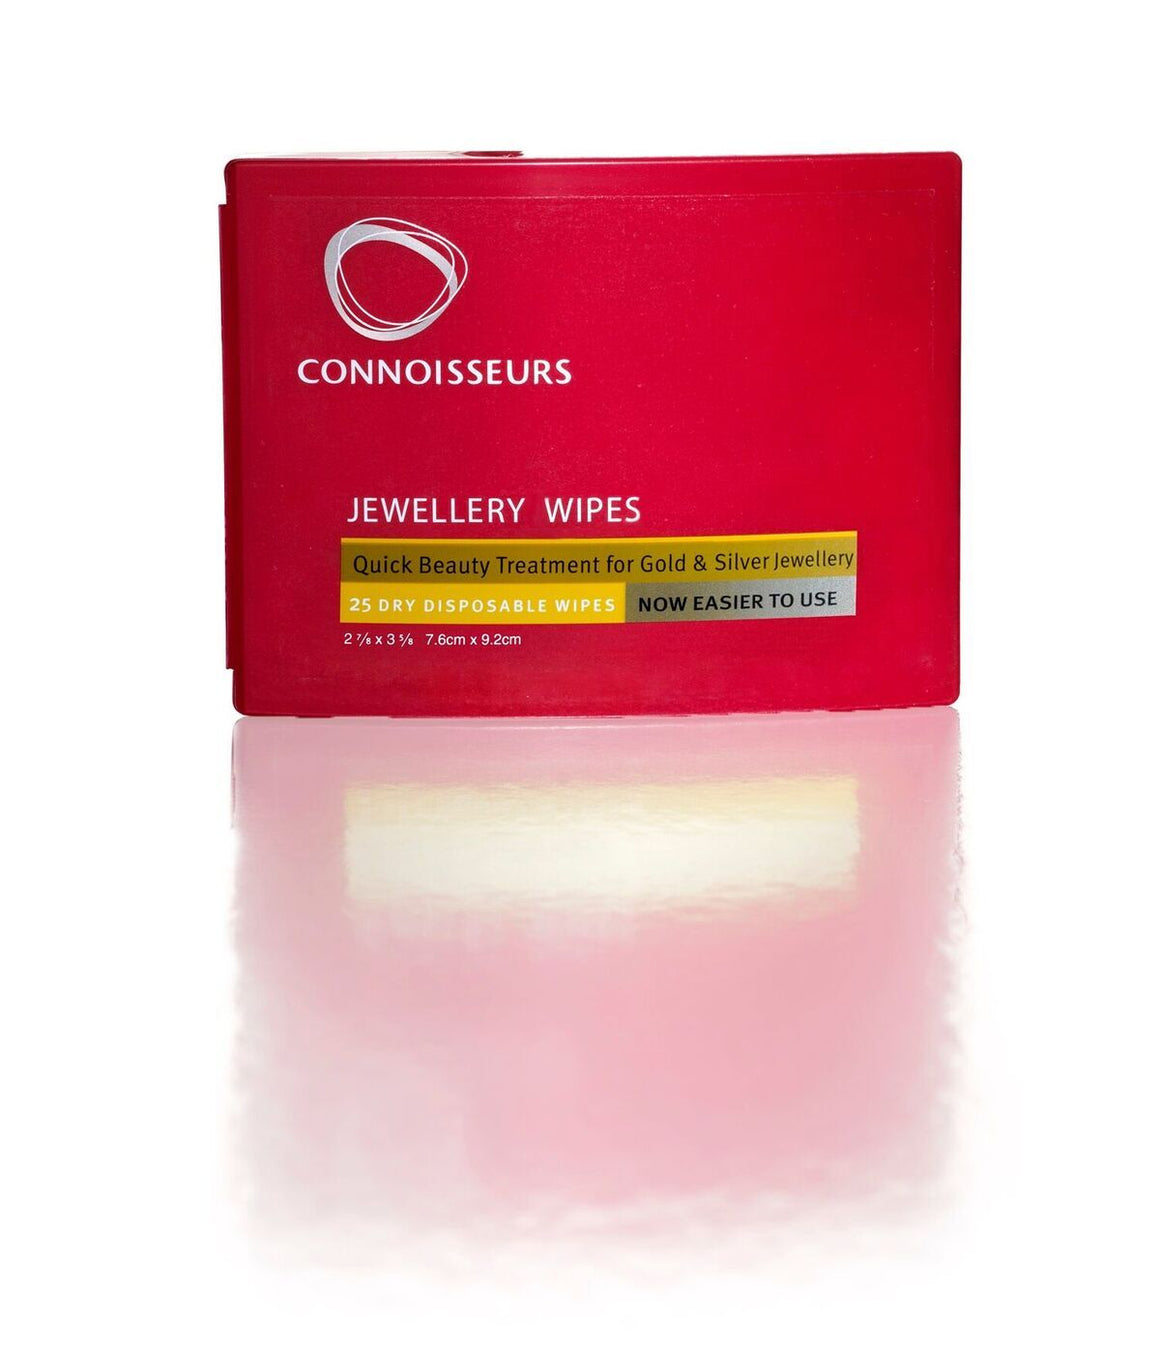 Jewellery Wipes